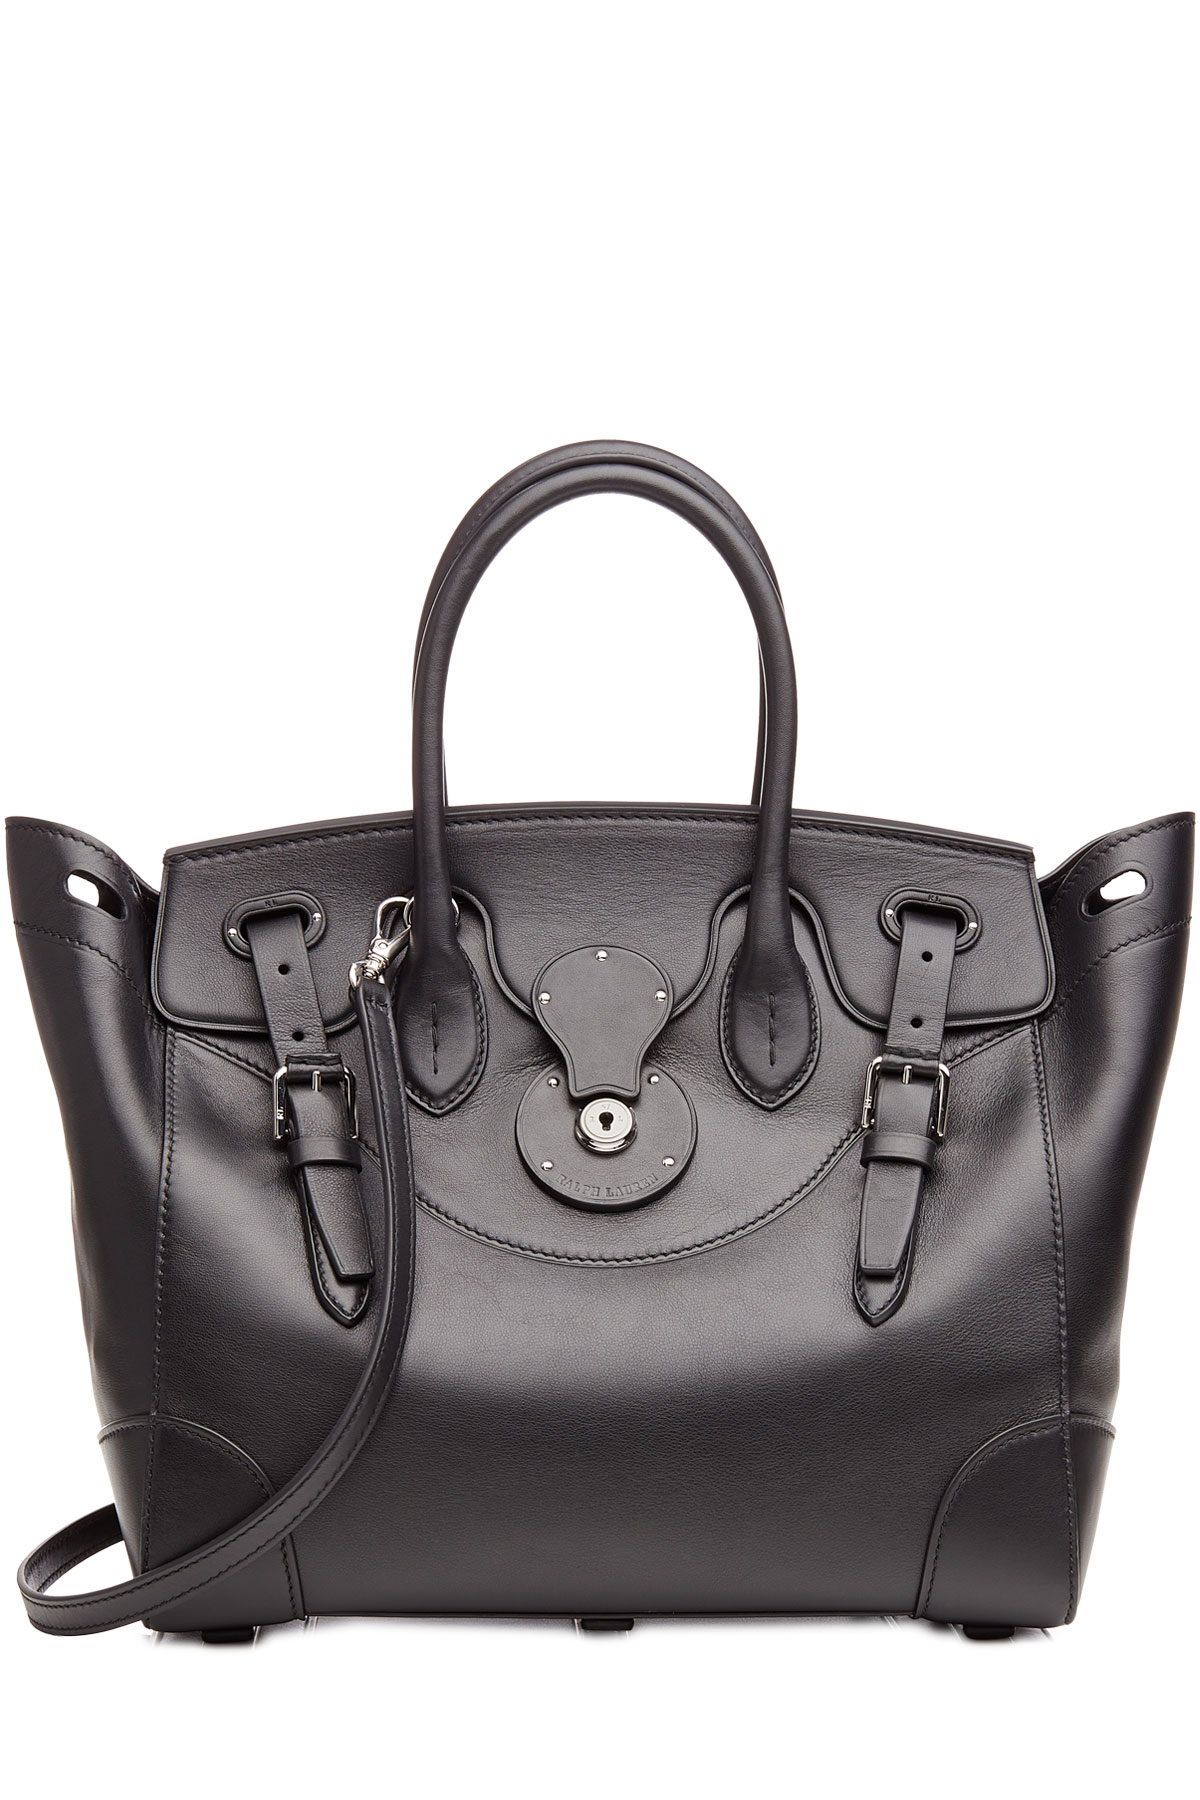 45ca7a6620 Lyst - Ralph Lauren Collection Leather Soft Ricky Tote - Black in Black